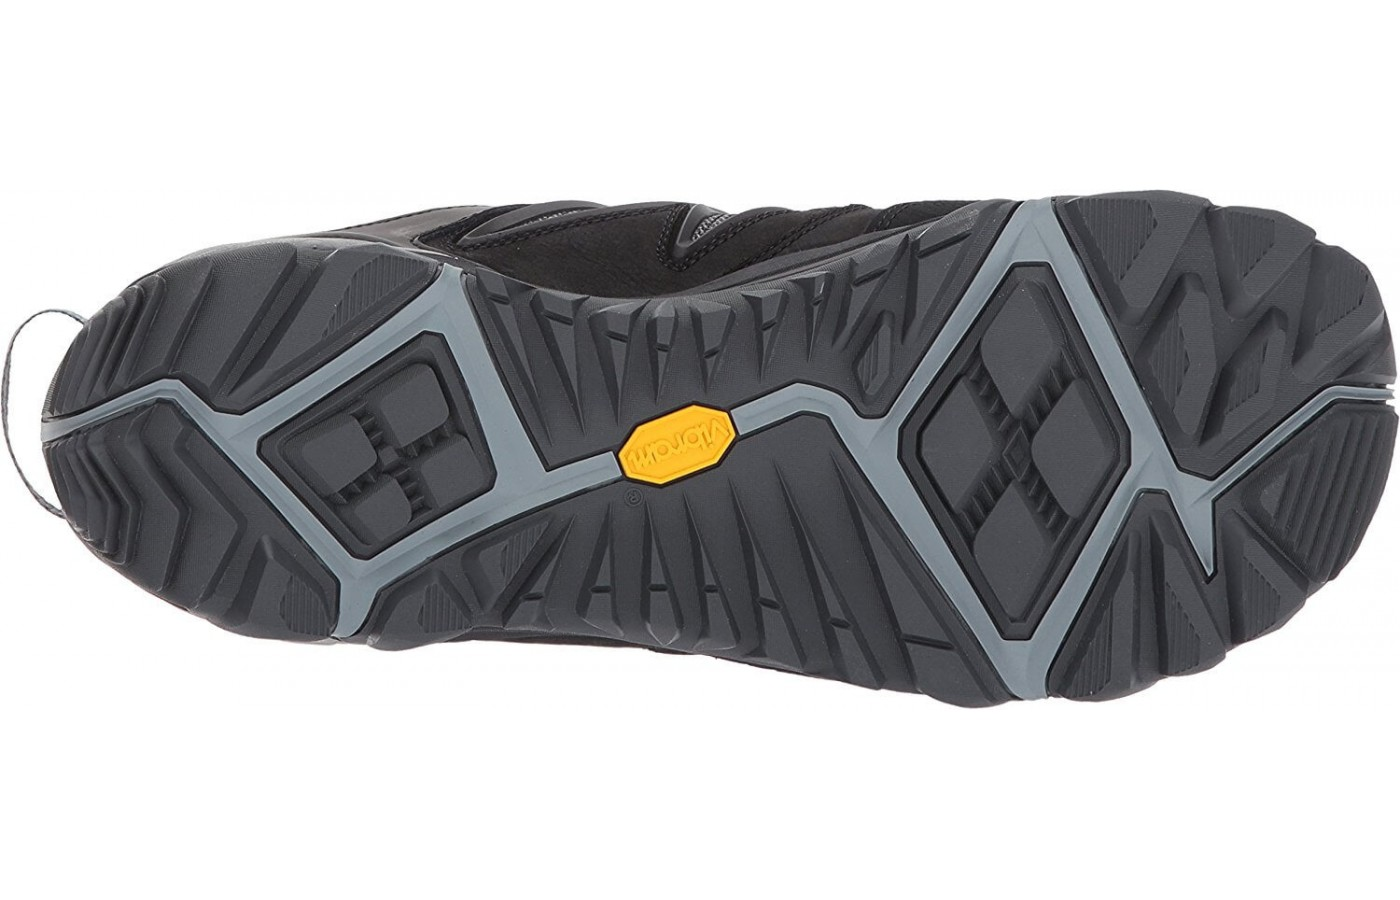 The bottom portion of the Merrell All Out Blaze 2.